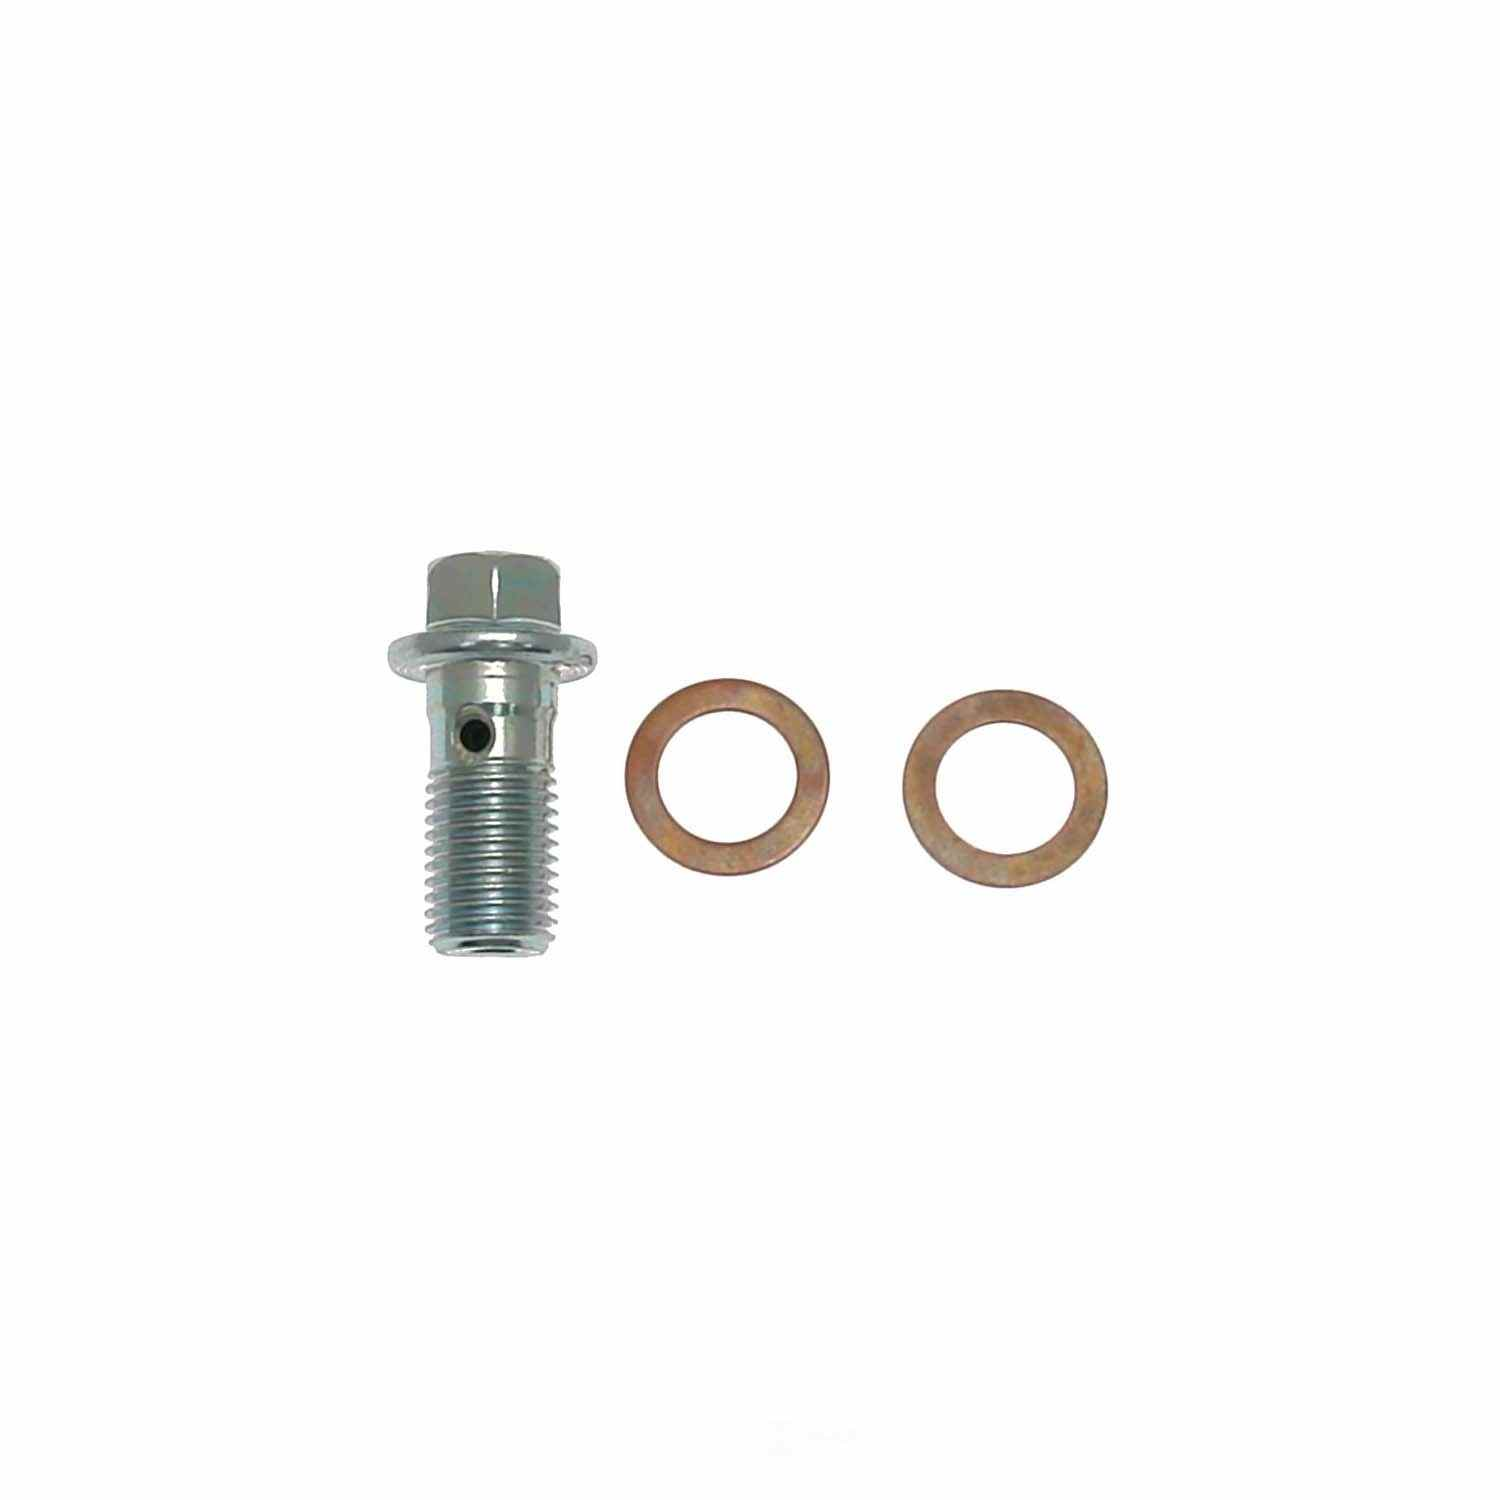 CARLSON QUALITY BRAKE PARTS - Brake Hydraulic Banjo Bolt - CRL H9457-2